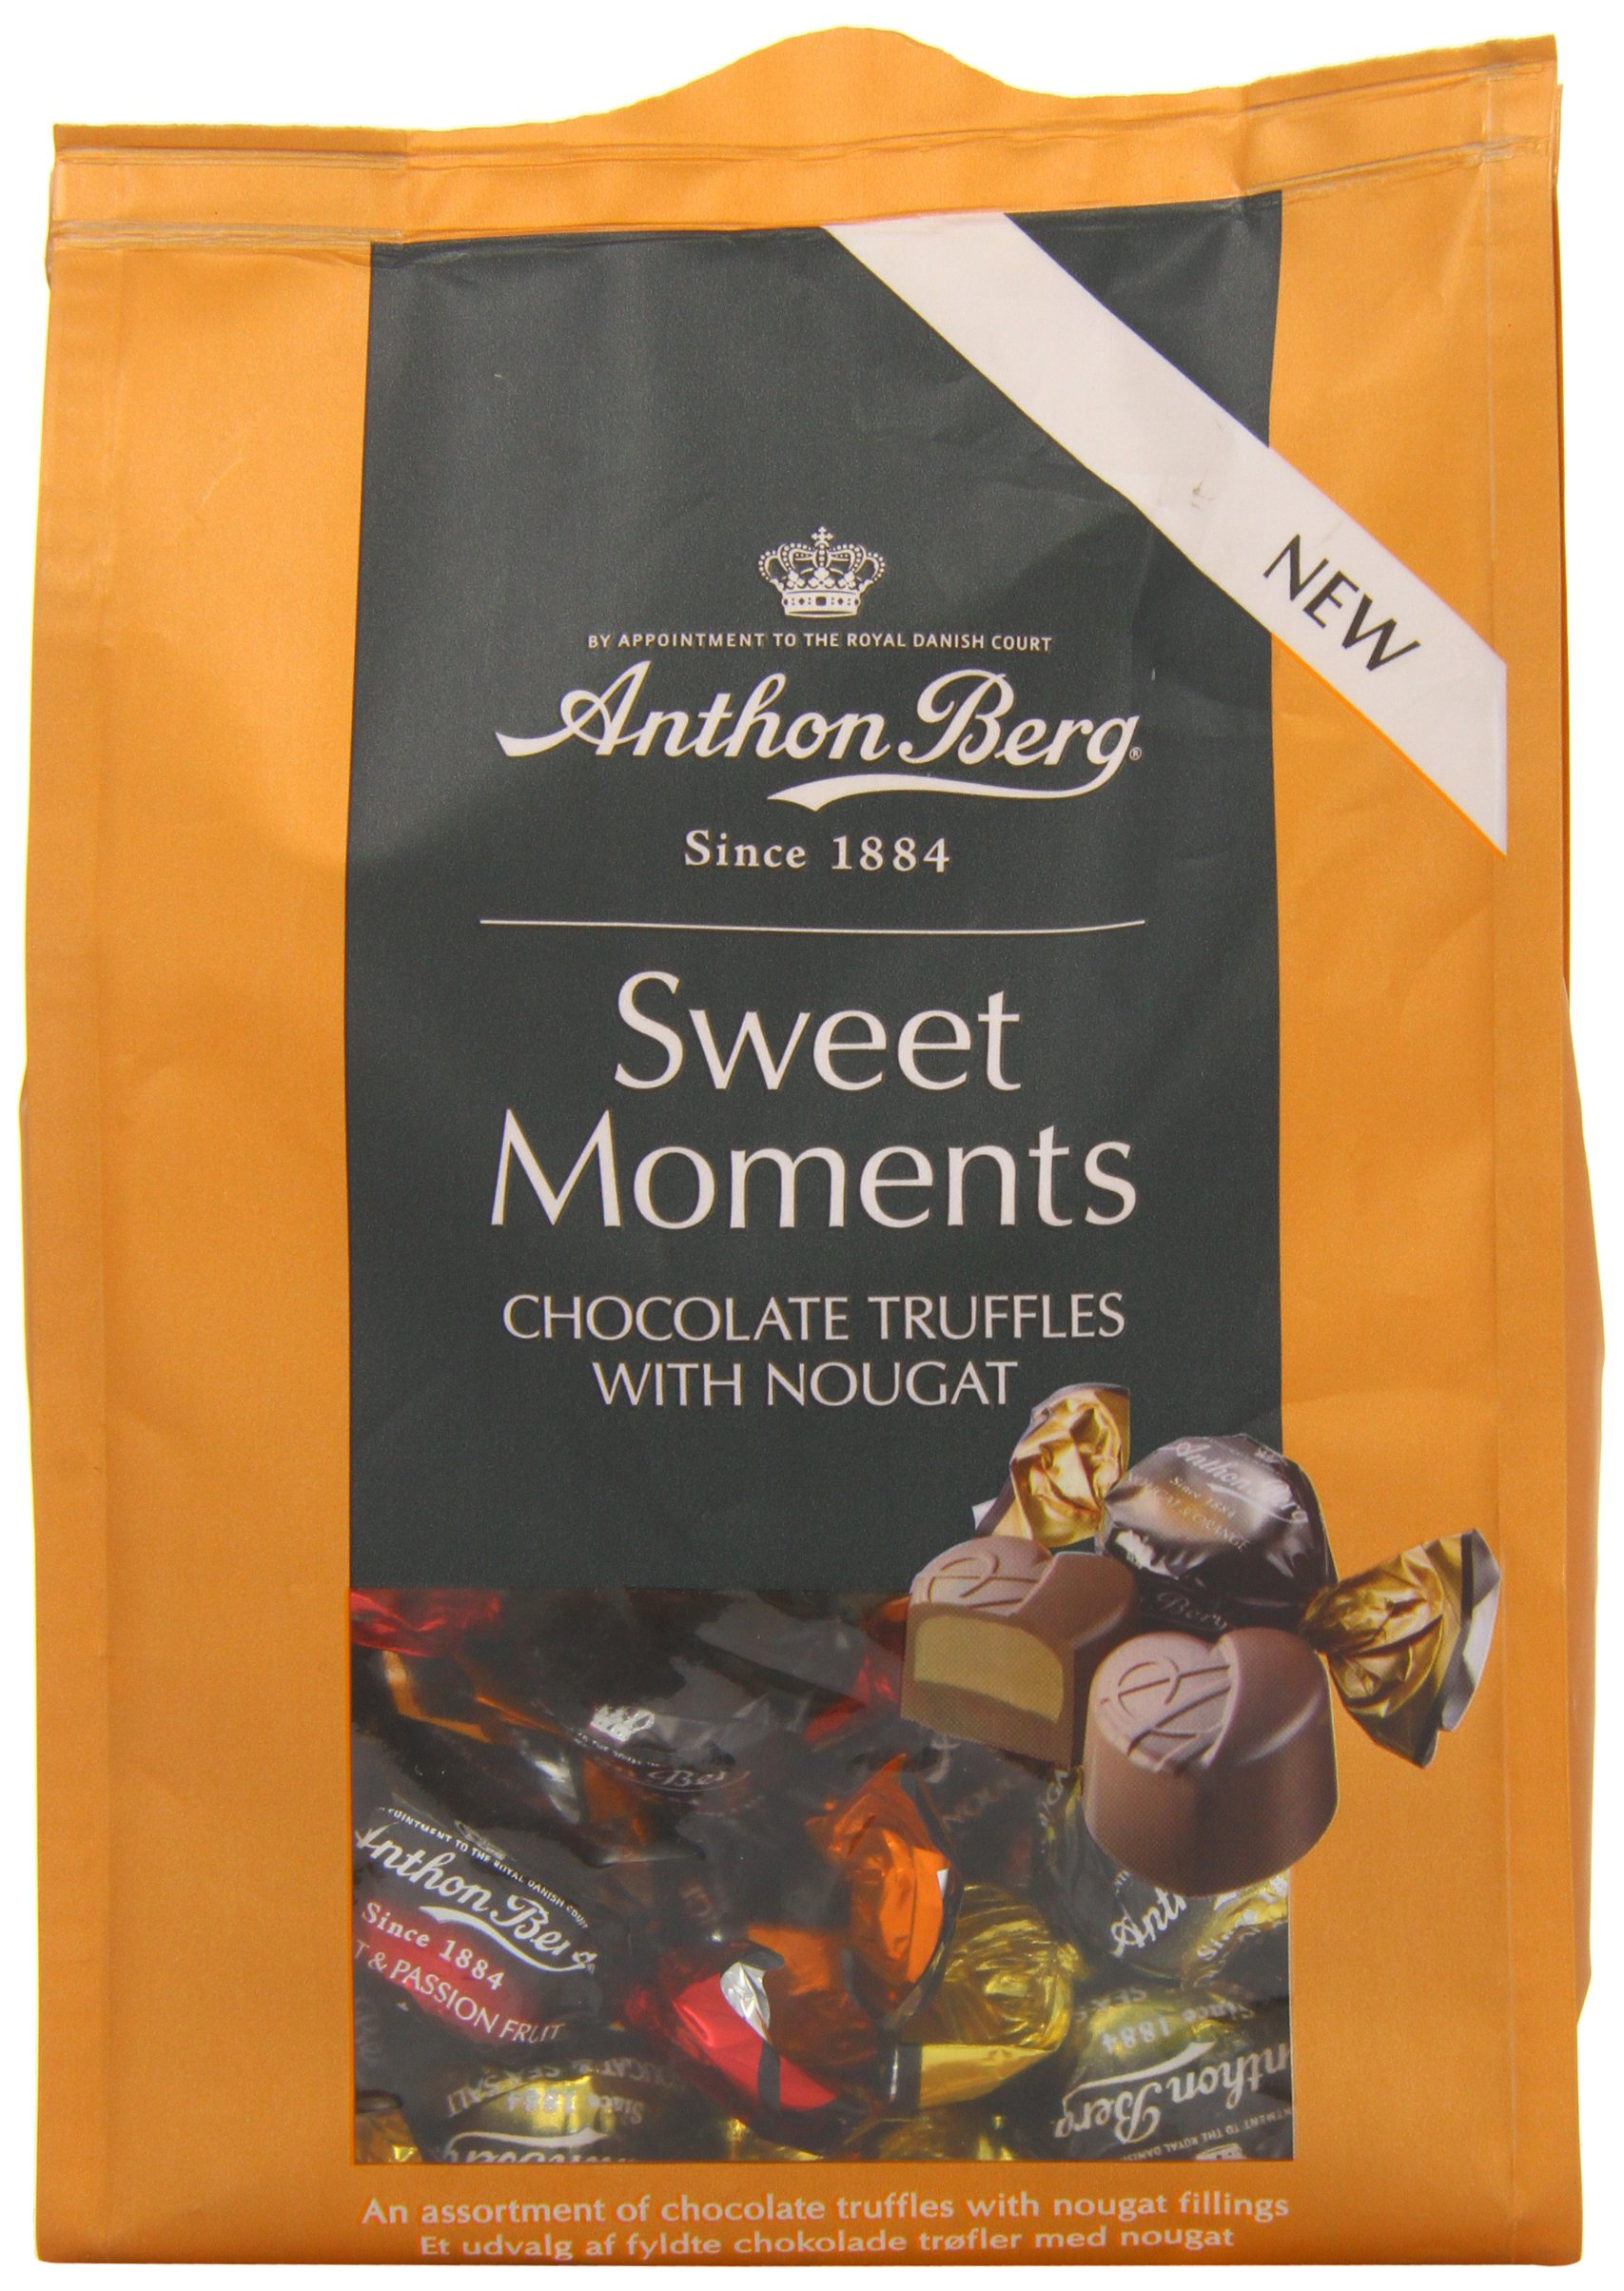 Anthon Berg Sweet Moments Chocolate Truffles with